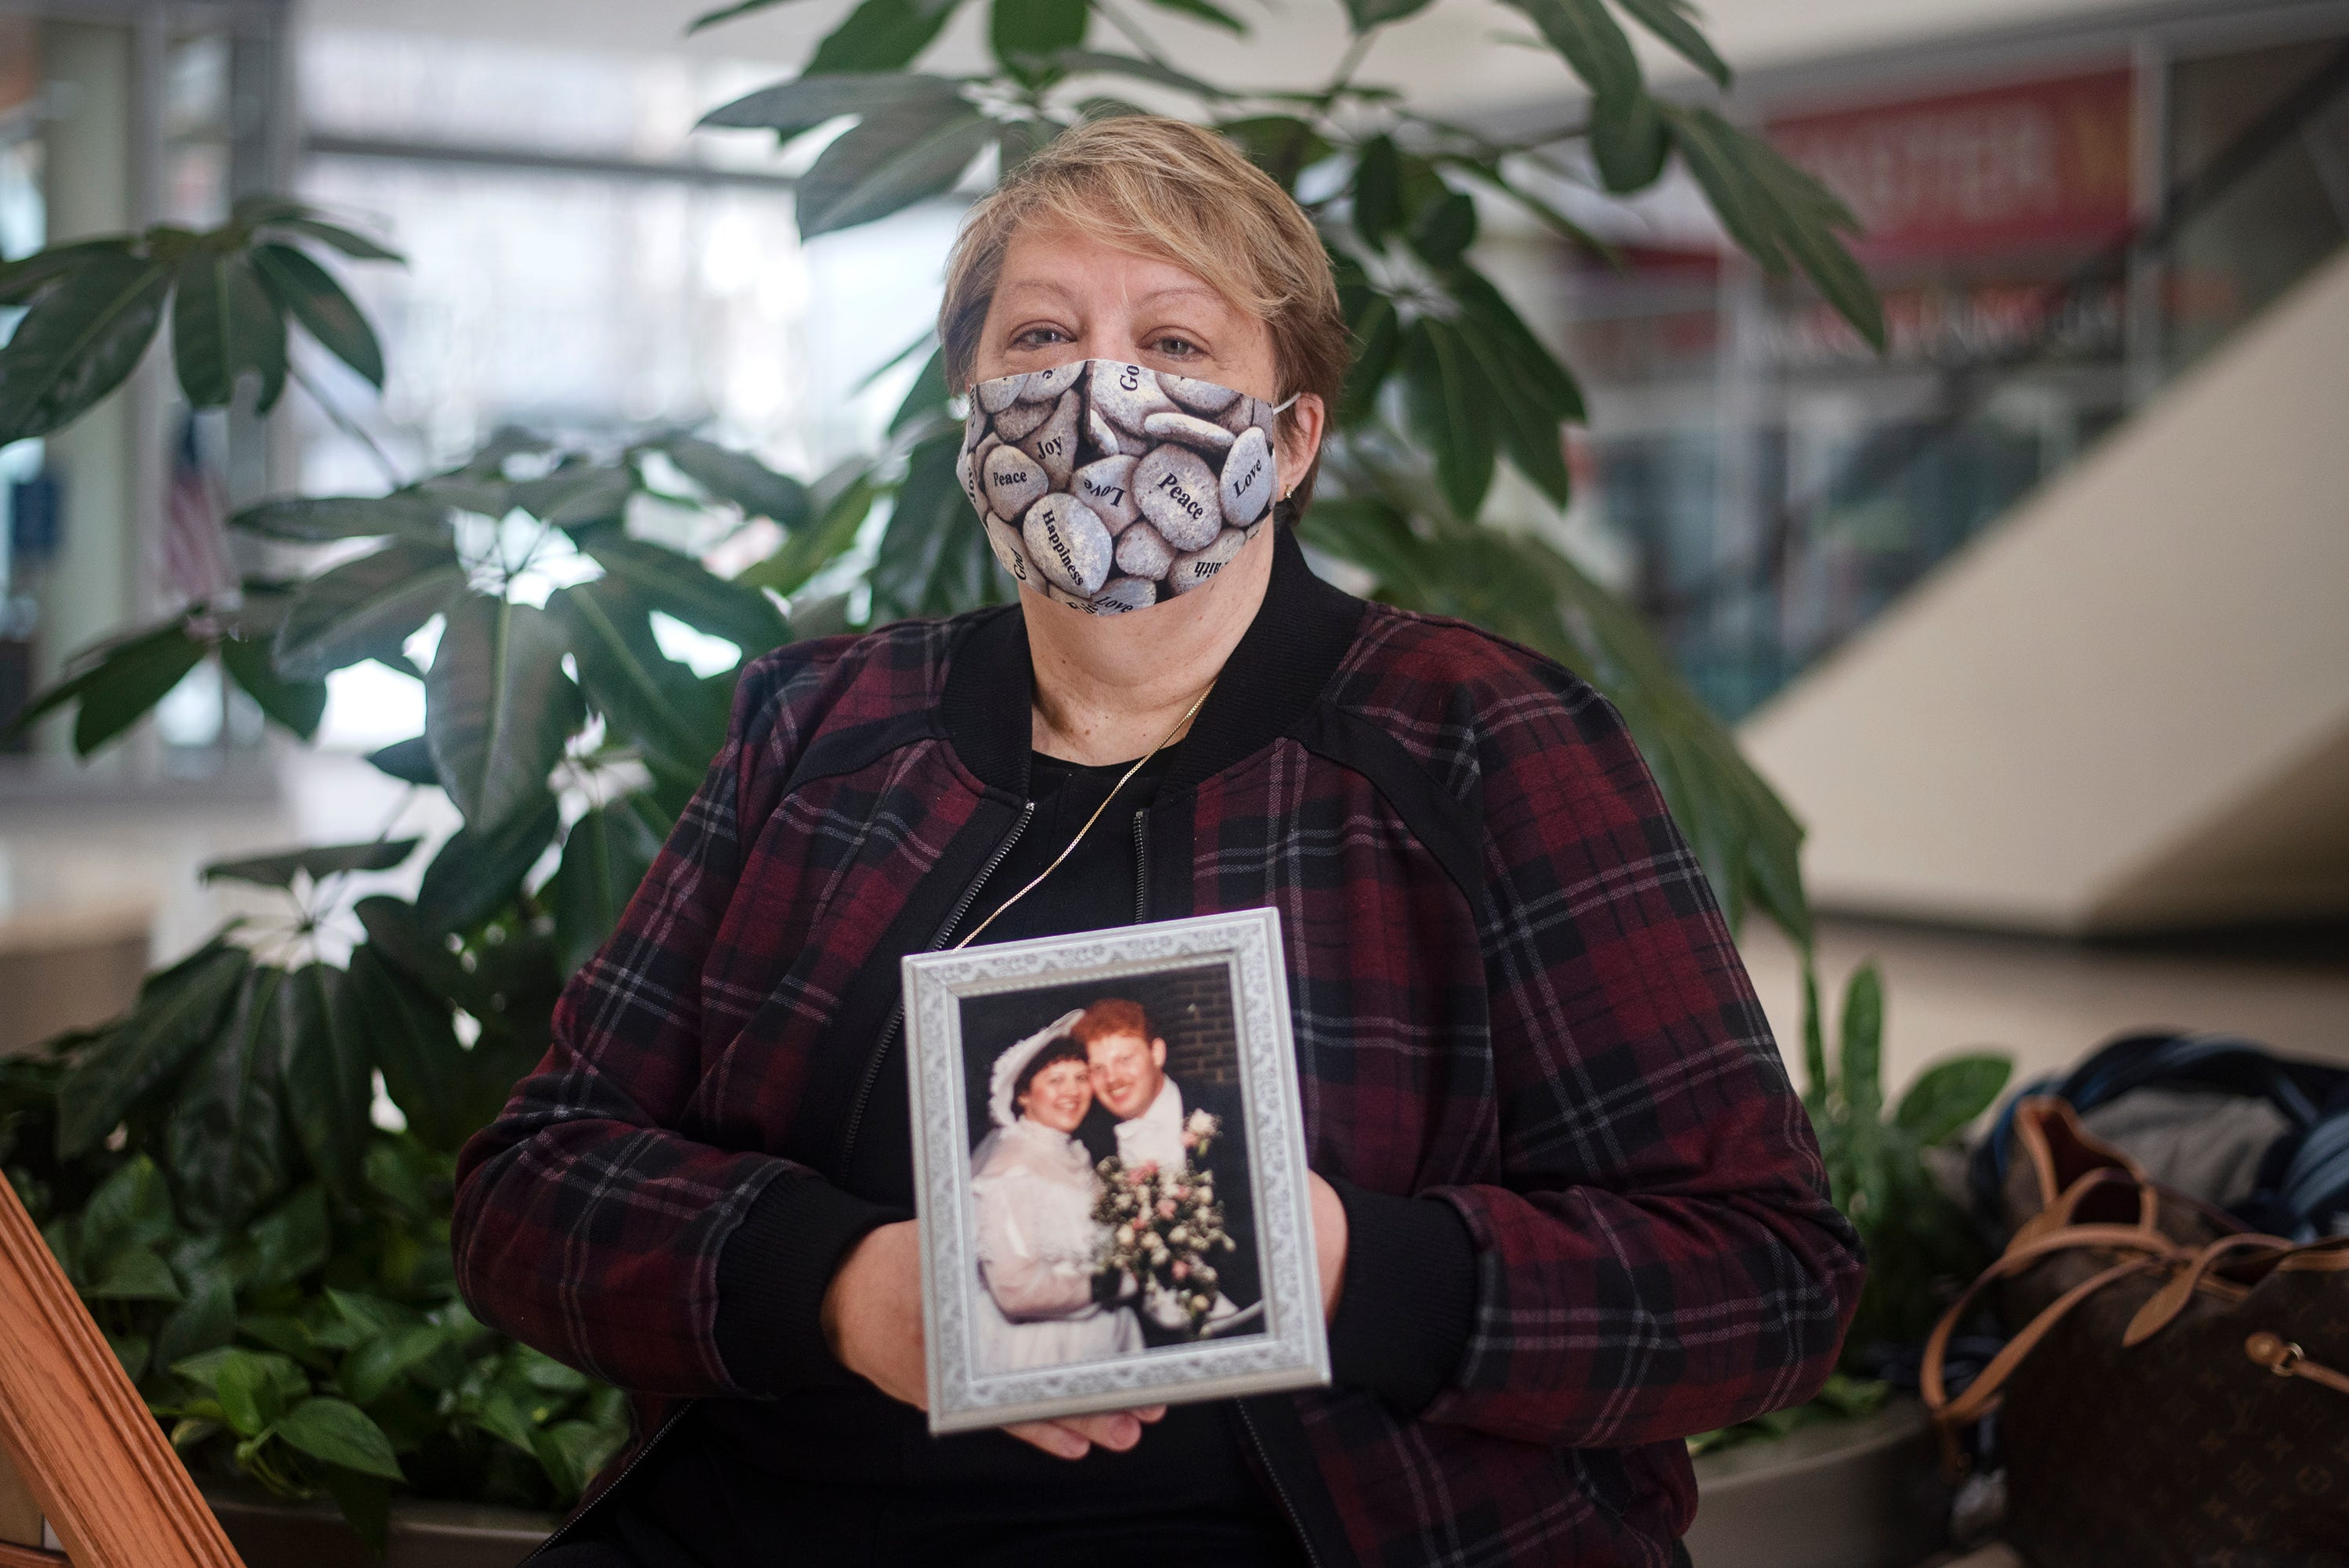 """Lois Vidimos poses with a wedding photo of her late husband Robert Vidimos II. Vidimos II was 58 when he died on Nov. 16, 2020 from complications from COVID-19. """"One of the simplest things that I miss the most is holding his hand,"""" said Vidimos."""